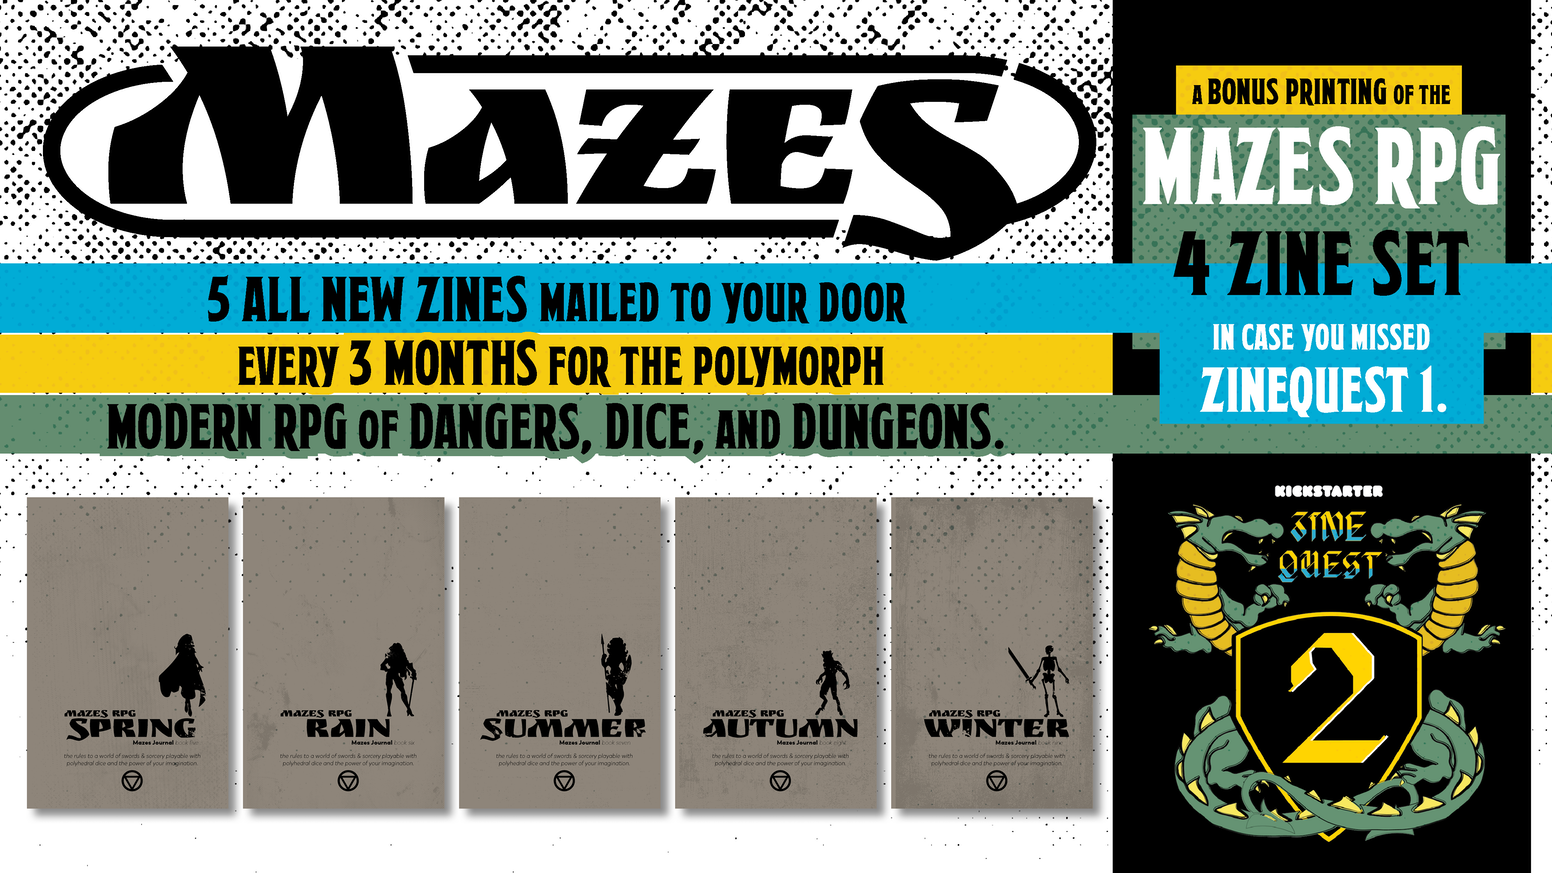 5 New Mazes Zines + Reprint of the 4 sold-out MAZES RPG Zines if you missed the 2019 #ZINEQUEST + other goodies like dice & a zine box!